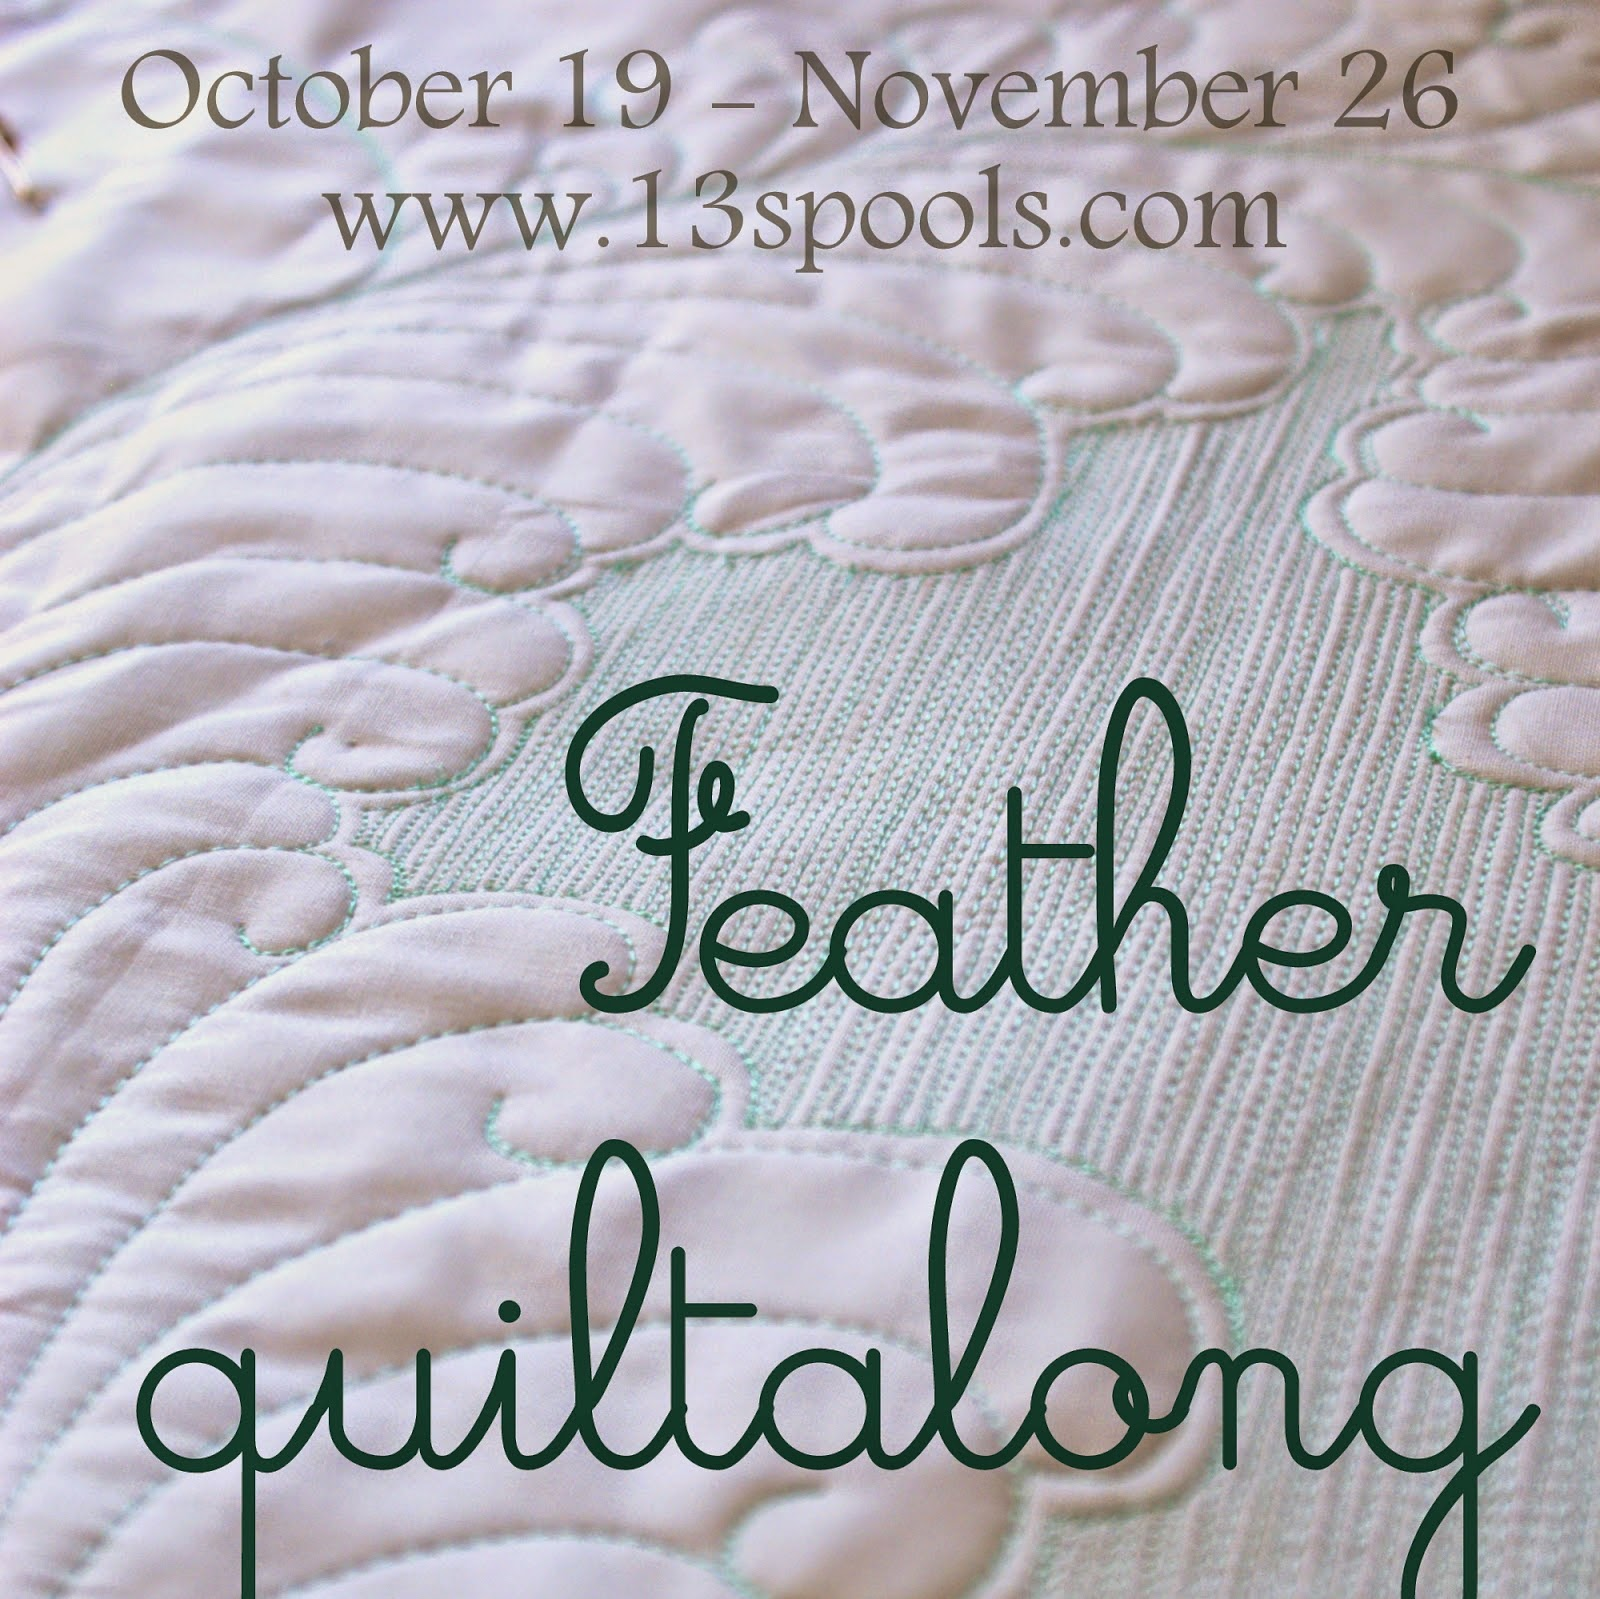 FEATHER QUILTALONG